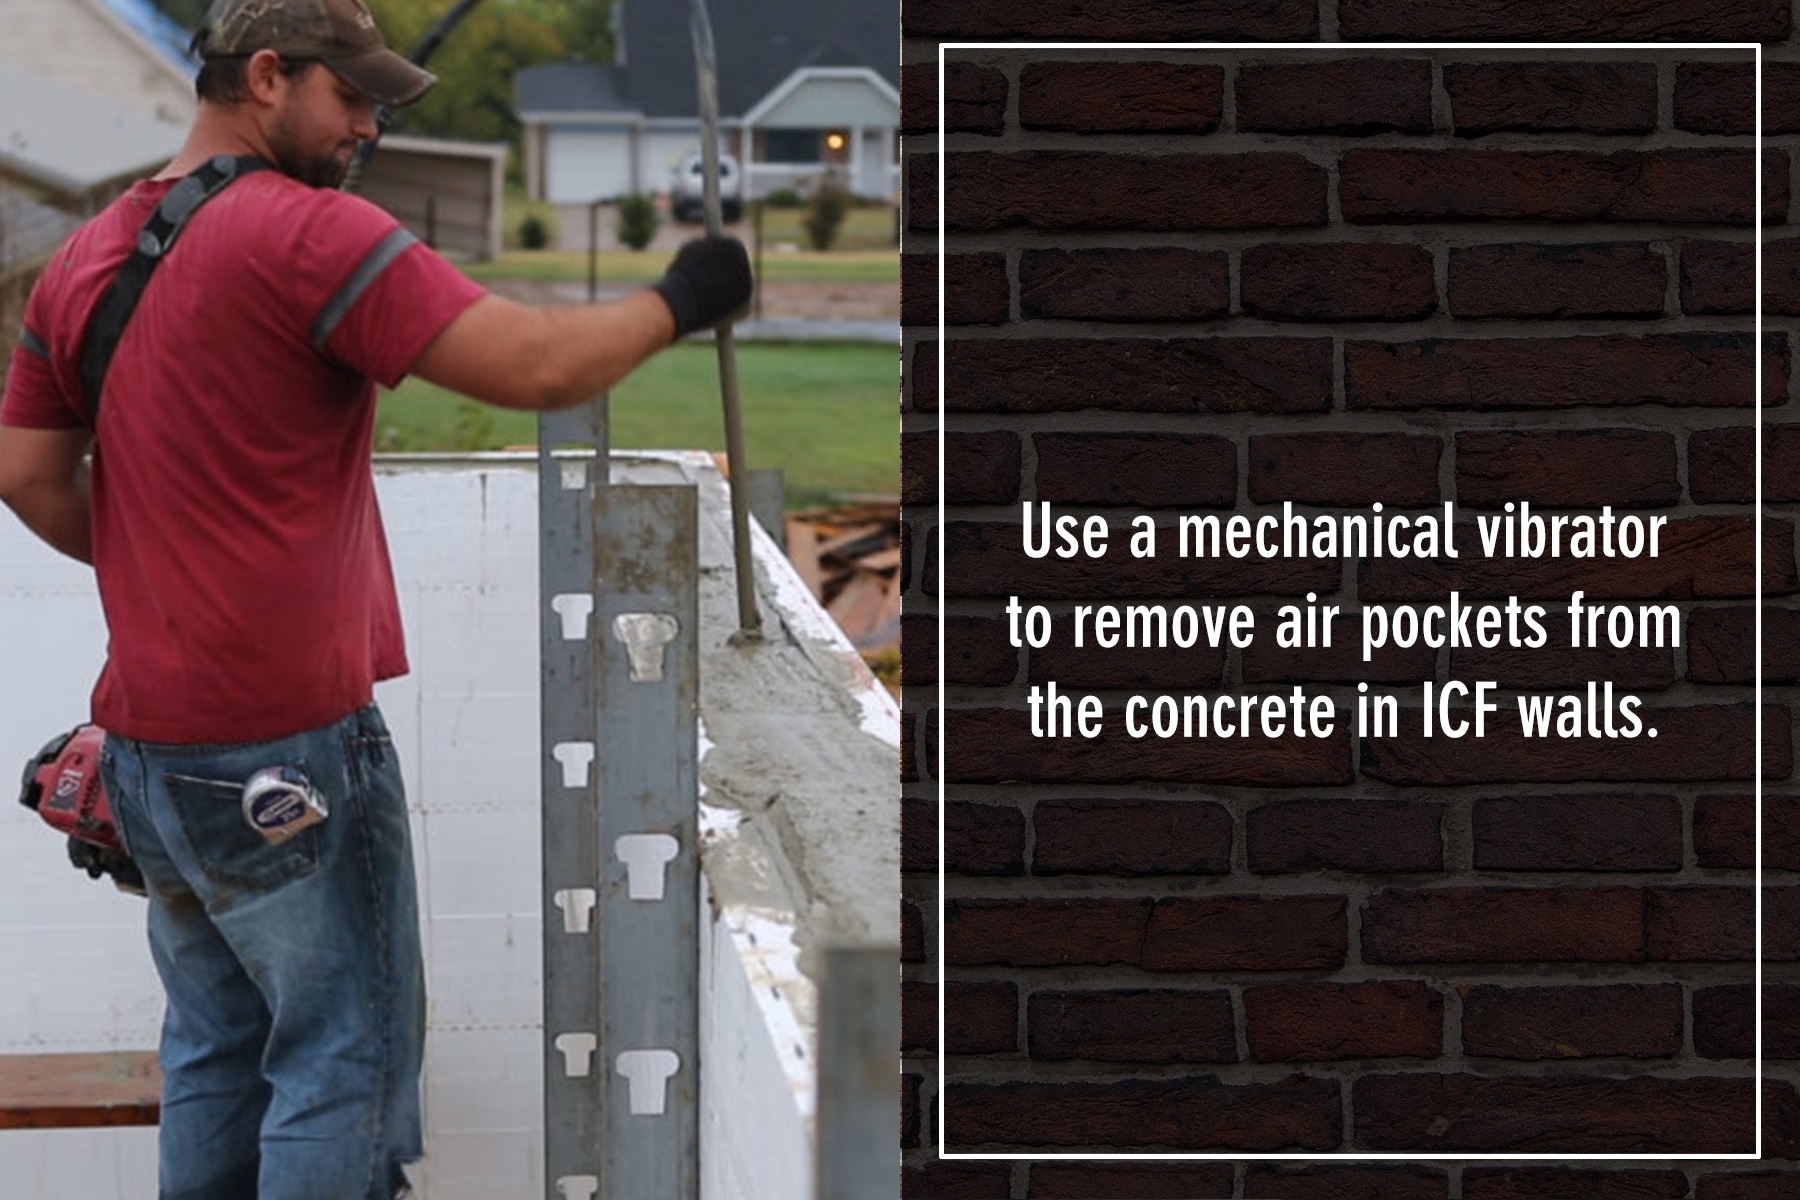 A mechanical vibrator can be used to remove air pockets from ICF walls